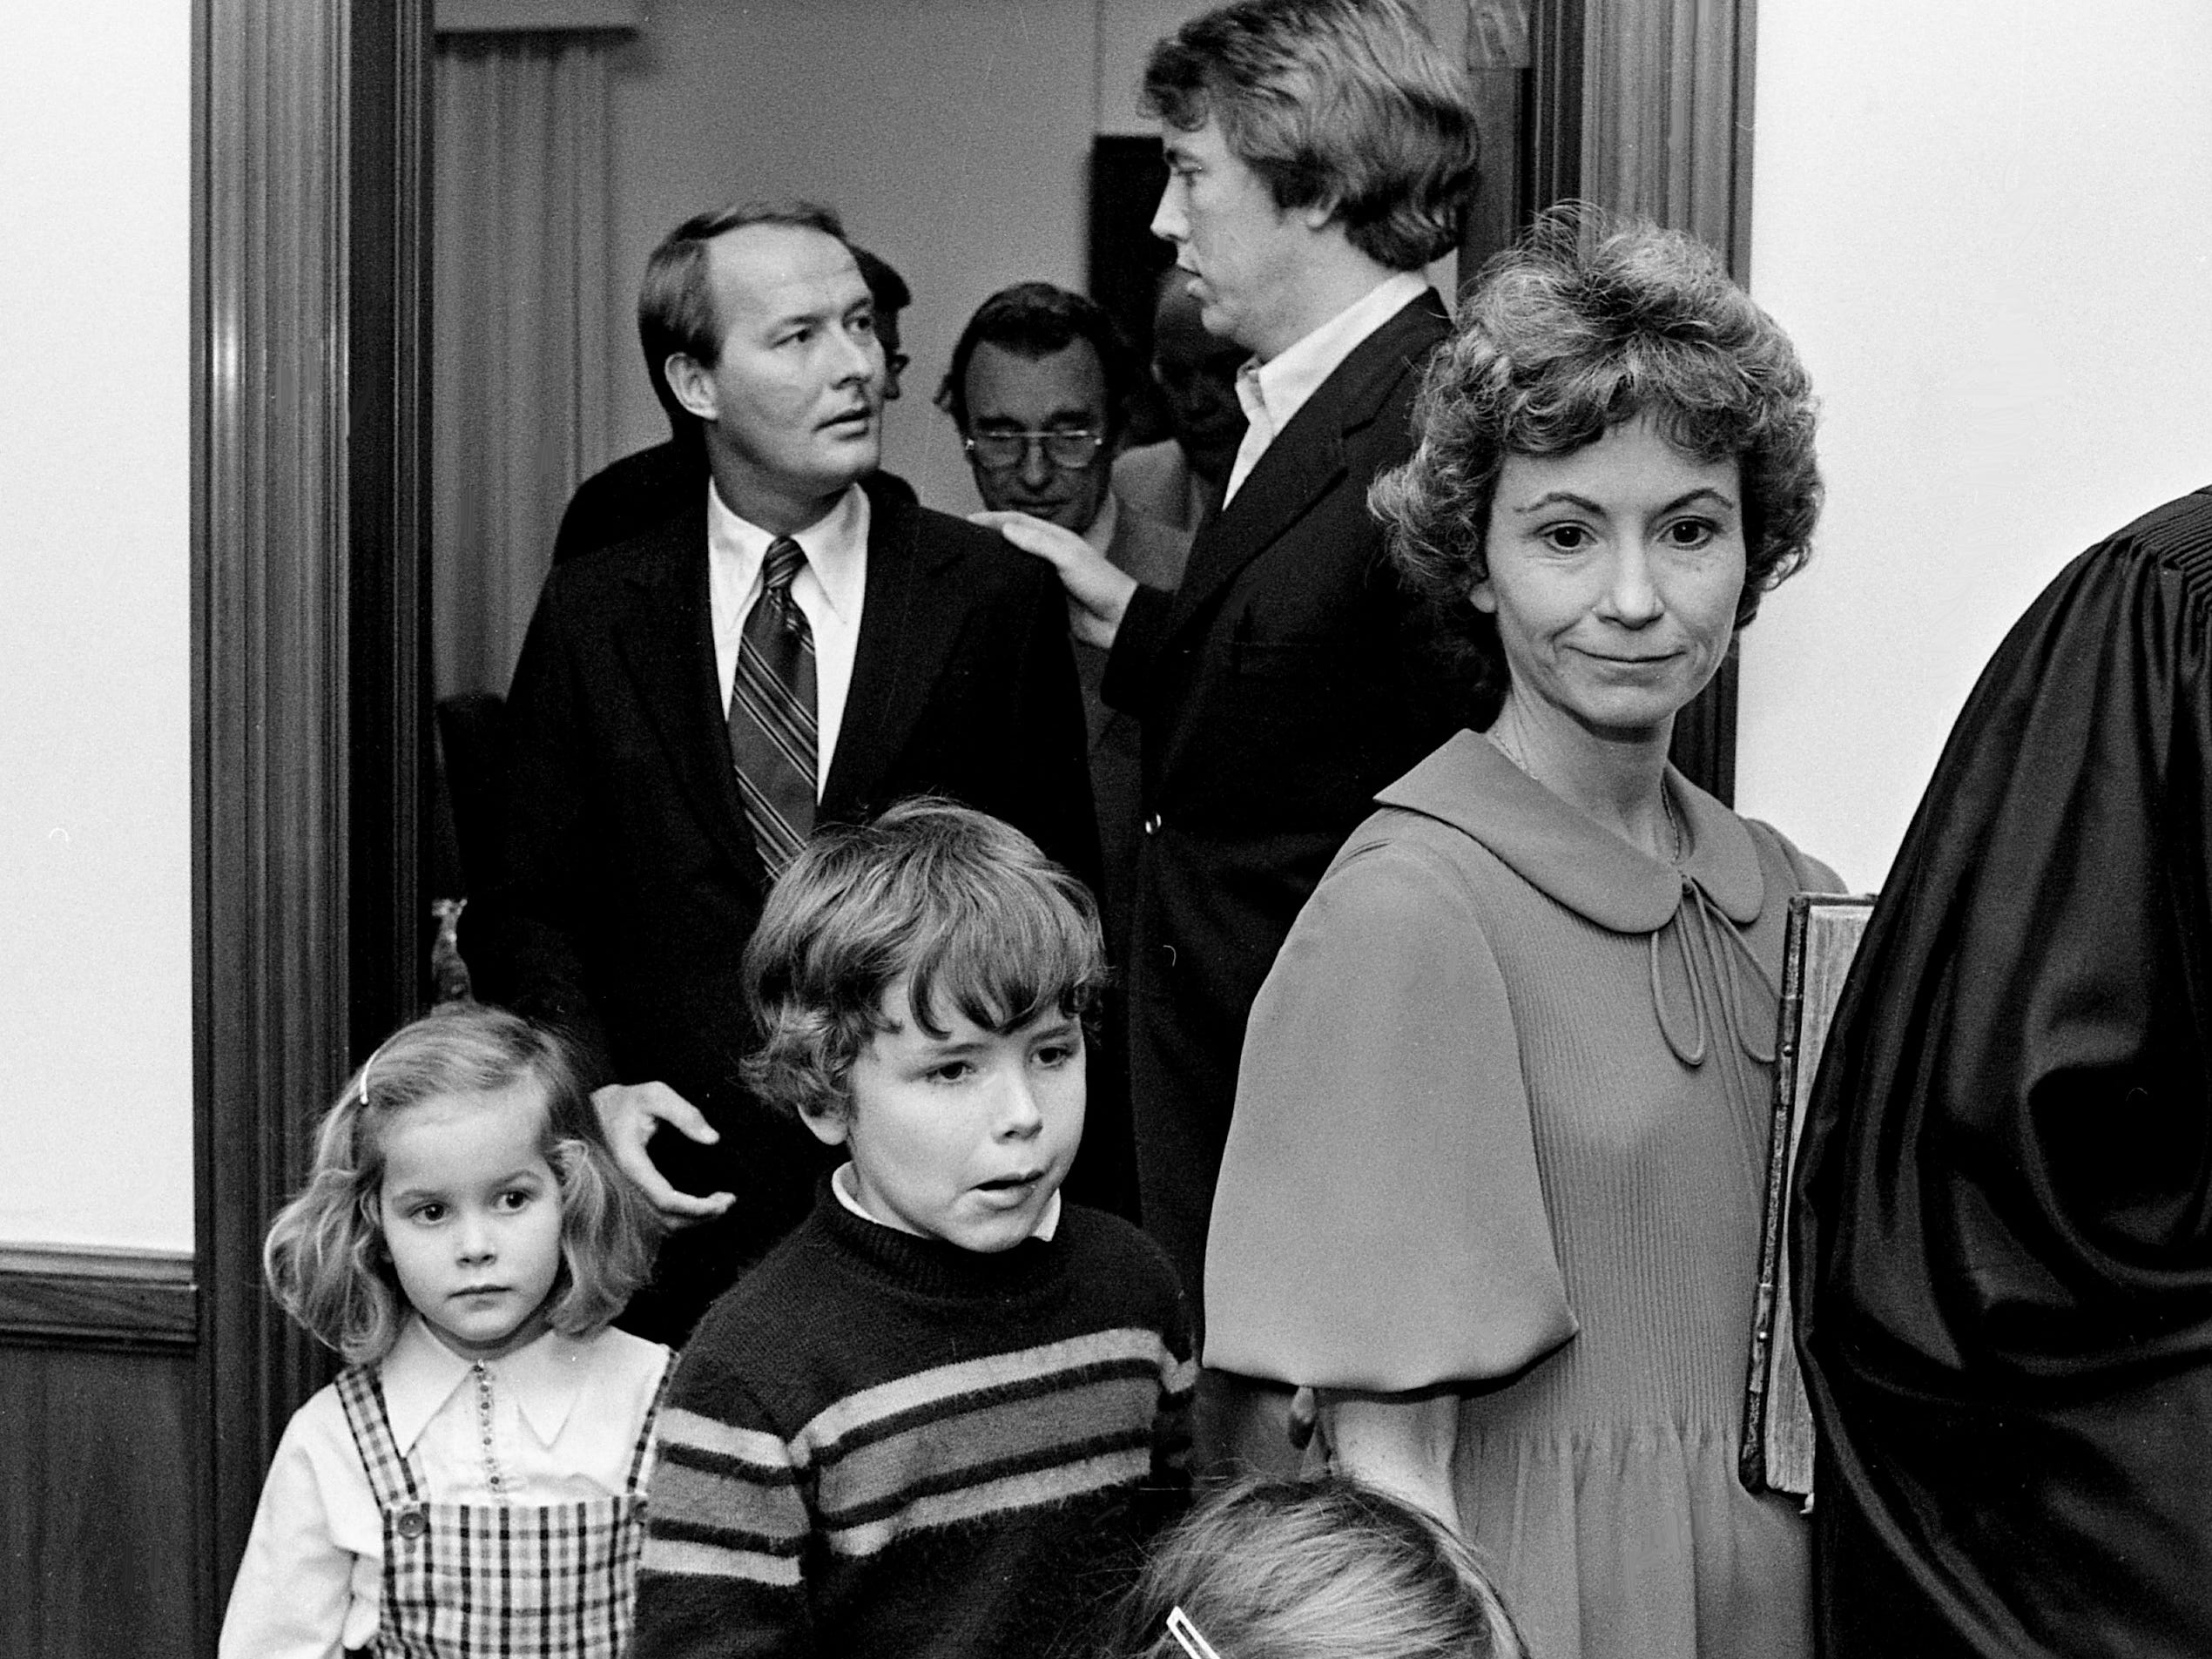 Gov.-elected Lamar Alexander, with wife Honey and children, Leslee, 6, Drew, 8, and Kathryn, 4, heads to be sworn in as the governor of Tennessee four days earlier on Jan. 17, 1979, after a federal prosecutor warned state leaders that Gov. Ray Blanton might free more convicts involved in a pay-for-freedom investigation.